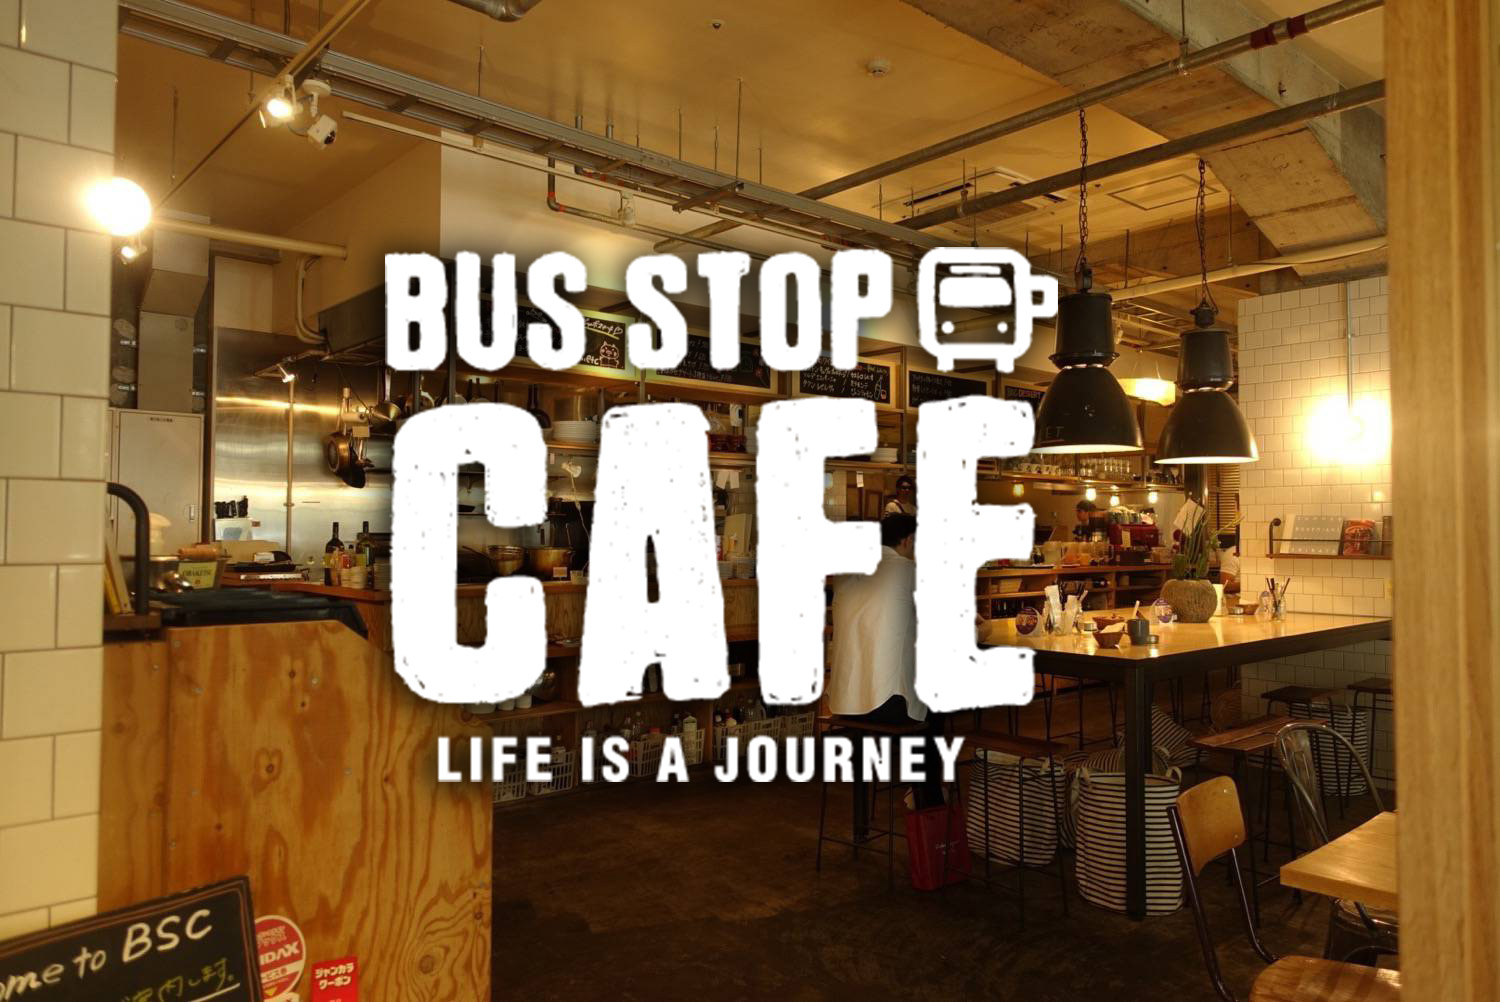 Busstopcafetop